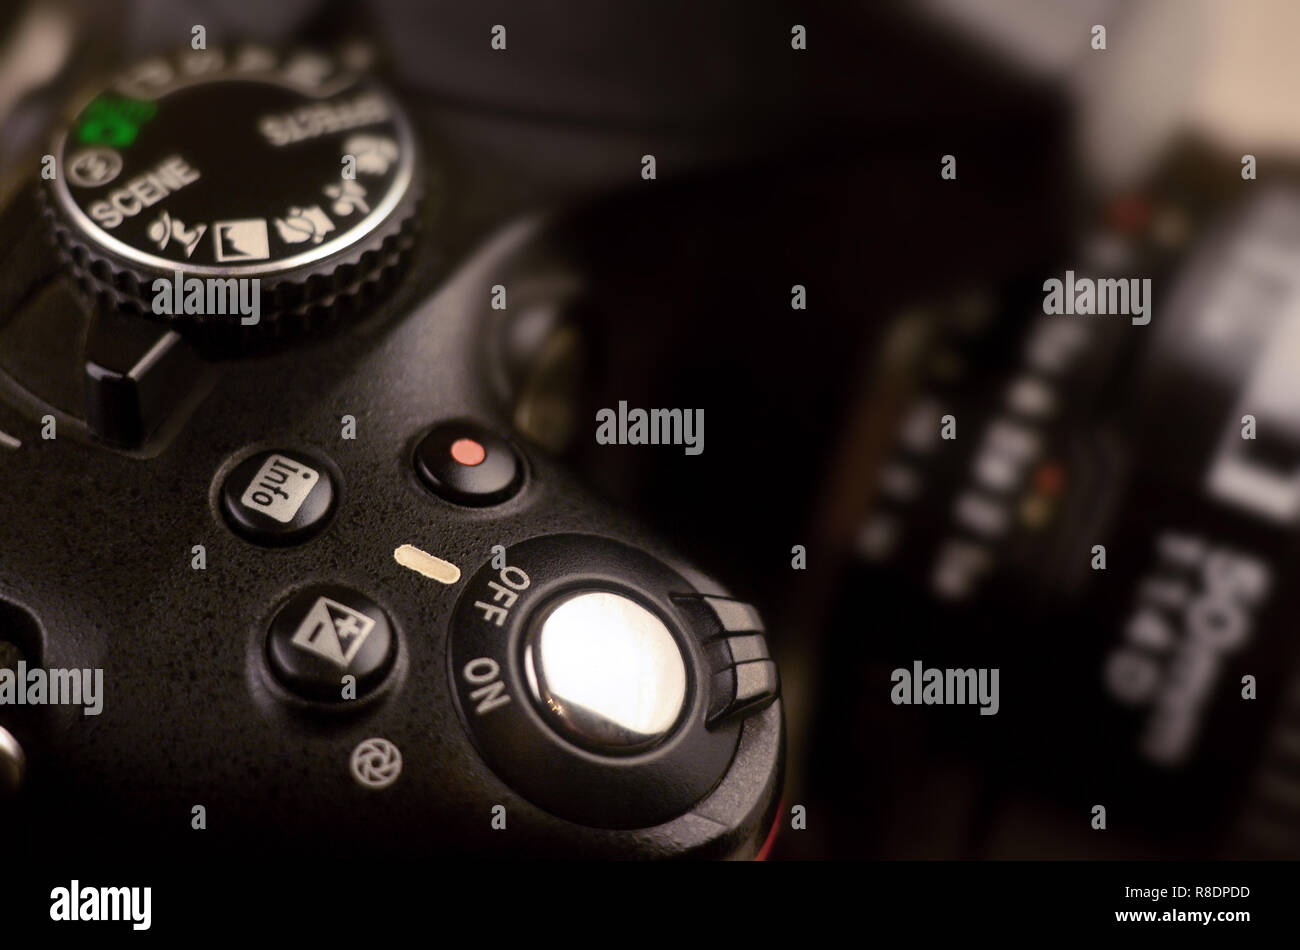 Close-up macro shot of a modern digital SLR camera. Detailed photo of black camera body with a classic wide aperture portrait lens - Stock Image